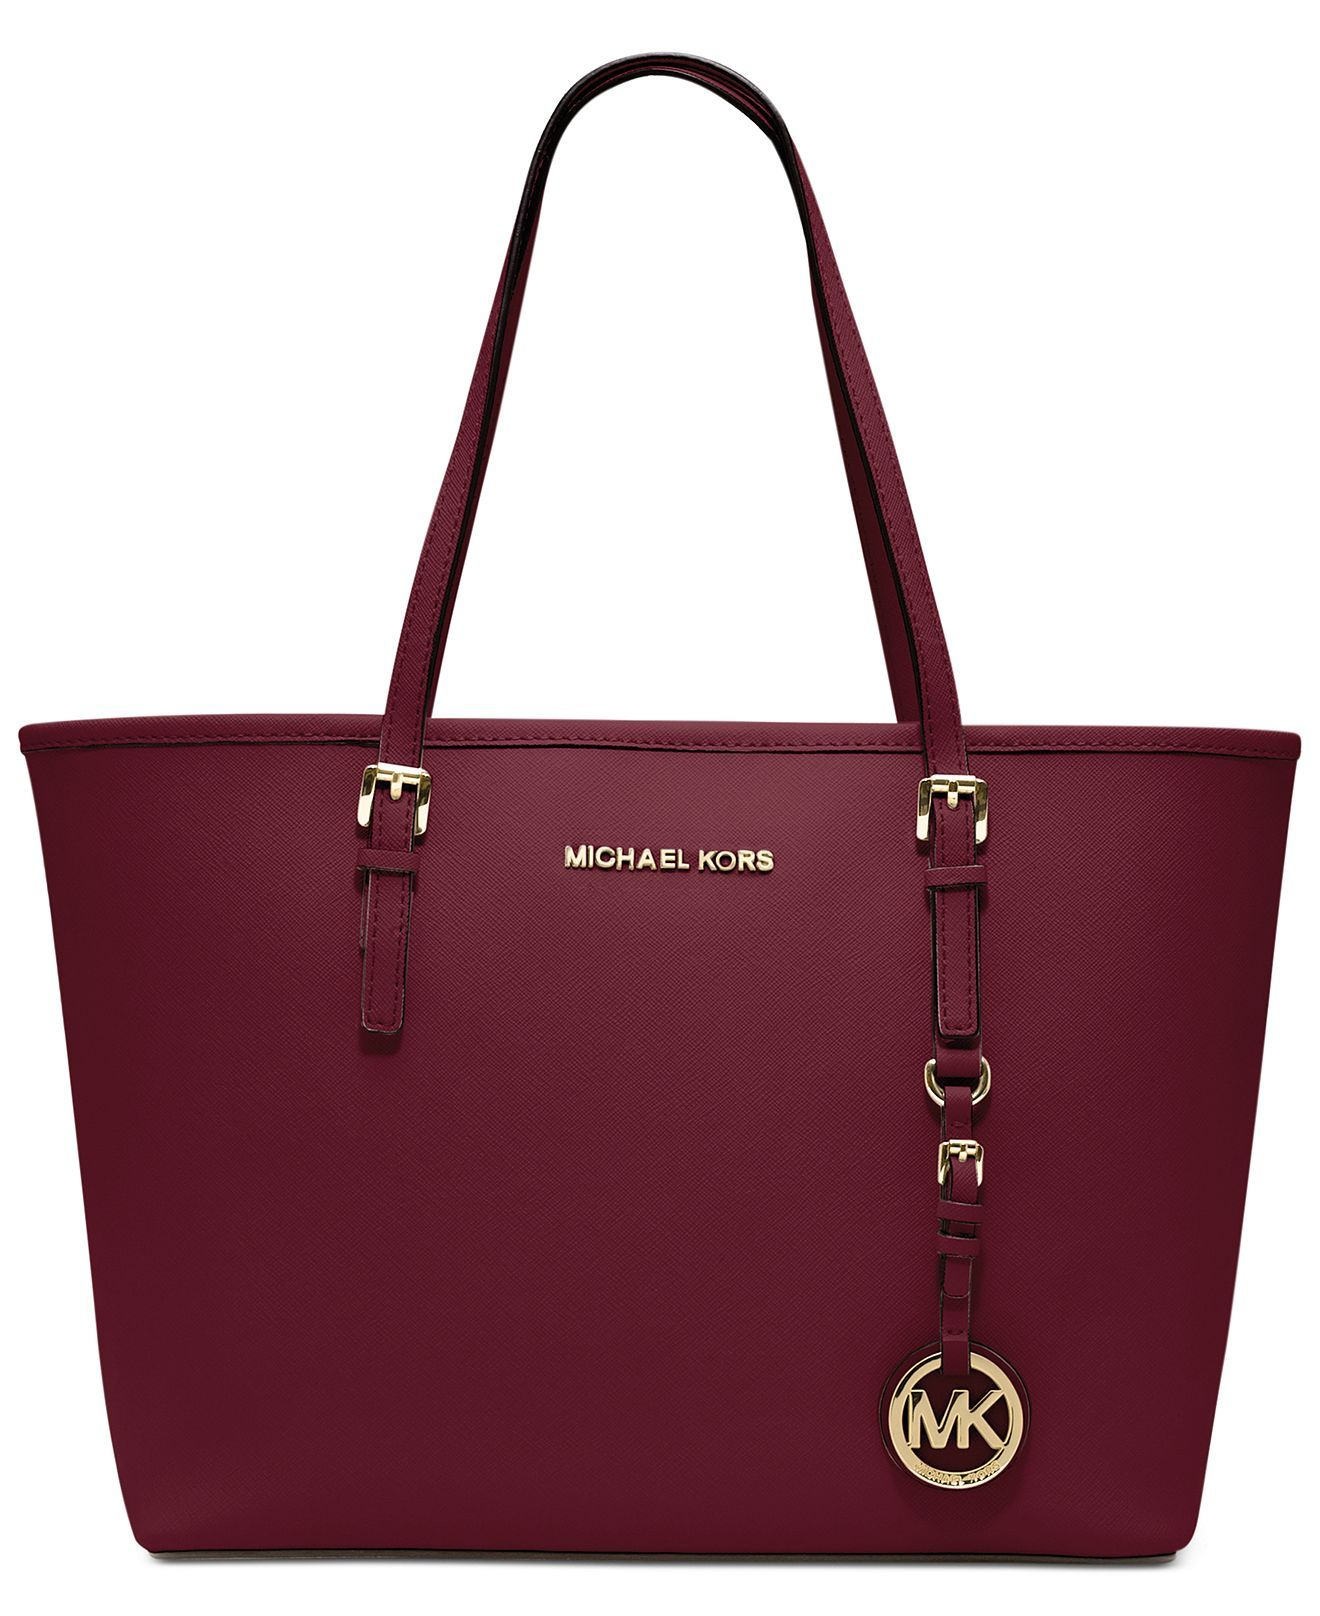 Michael Kors Handbags. Elevate any outfit and make a statement when you purchase a signature MICHAEL Michael Kors handbag. Combining stylish elegance and an edgy, sporty attitude, this brand's choices offer you plenty of totes, satchels, shoulder bags and must-have clutches to suit every occasion.